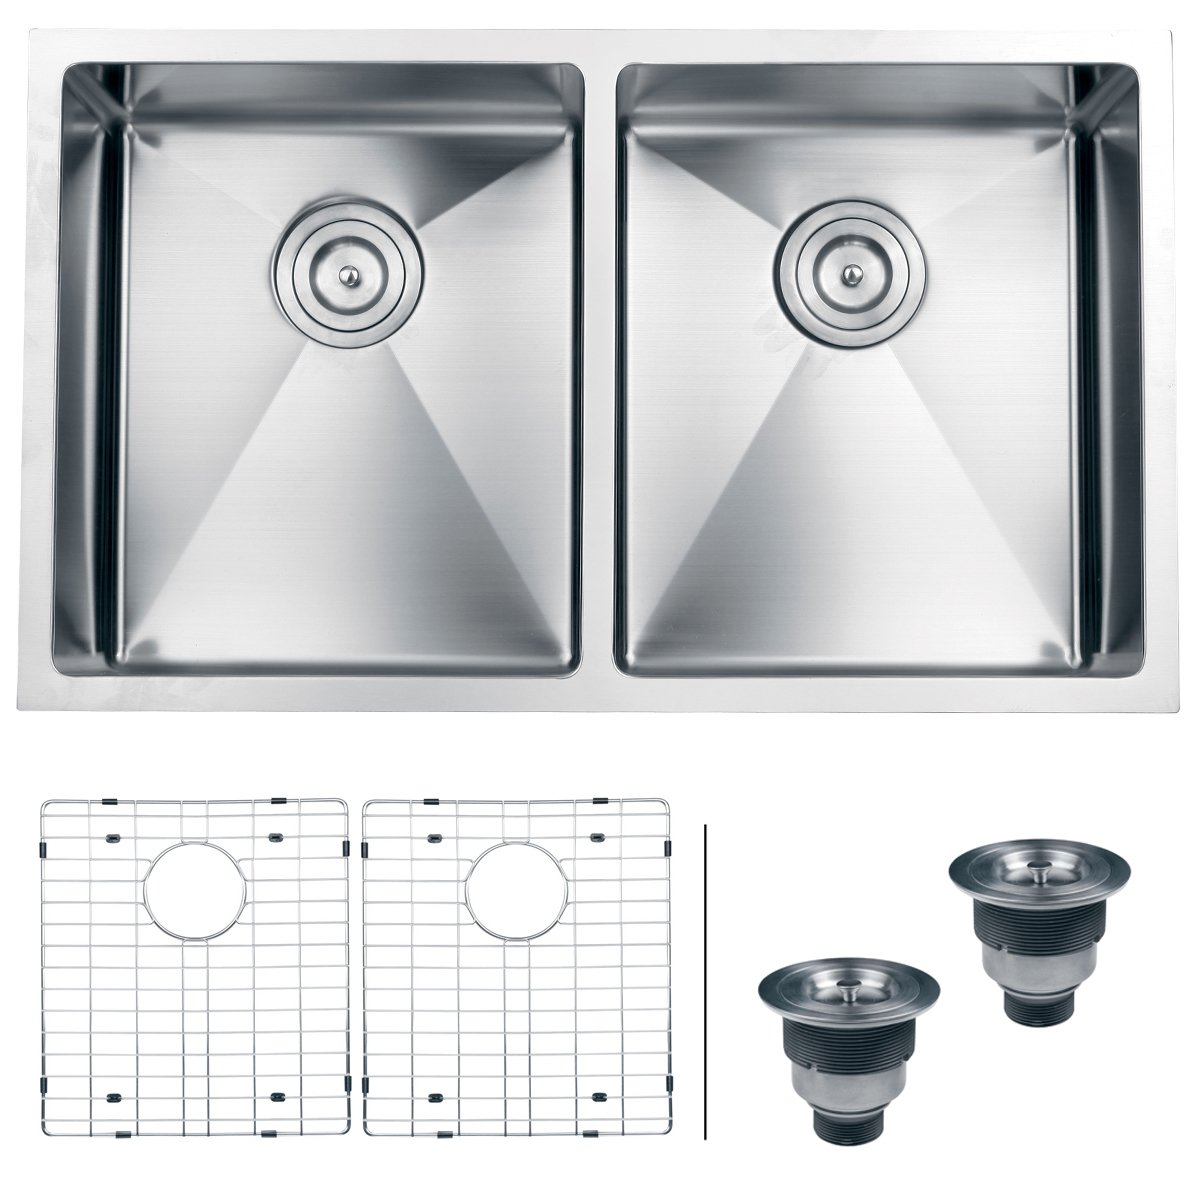 ruvati rvh7401 undermount 16 gauge kitchen sink double bowl 32   stainless steel     amazon com ruvati rvh7401 undermount 16 gauge kitchen sink double bowl 32      rh   amazon com